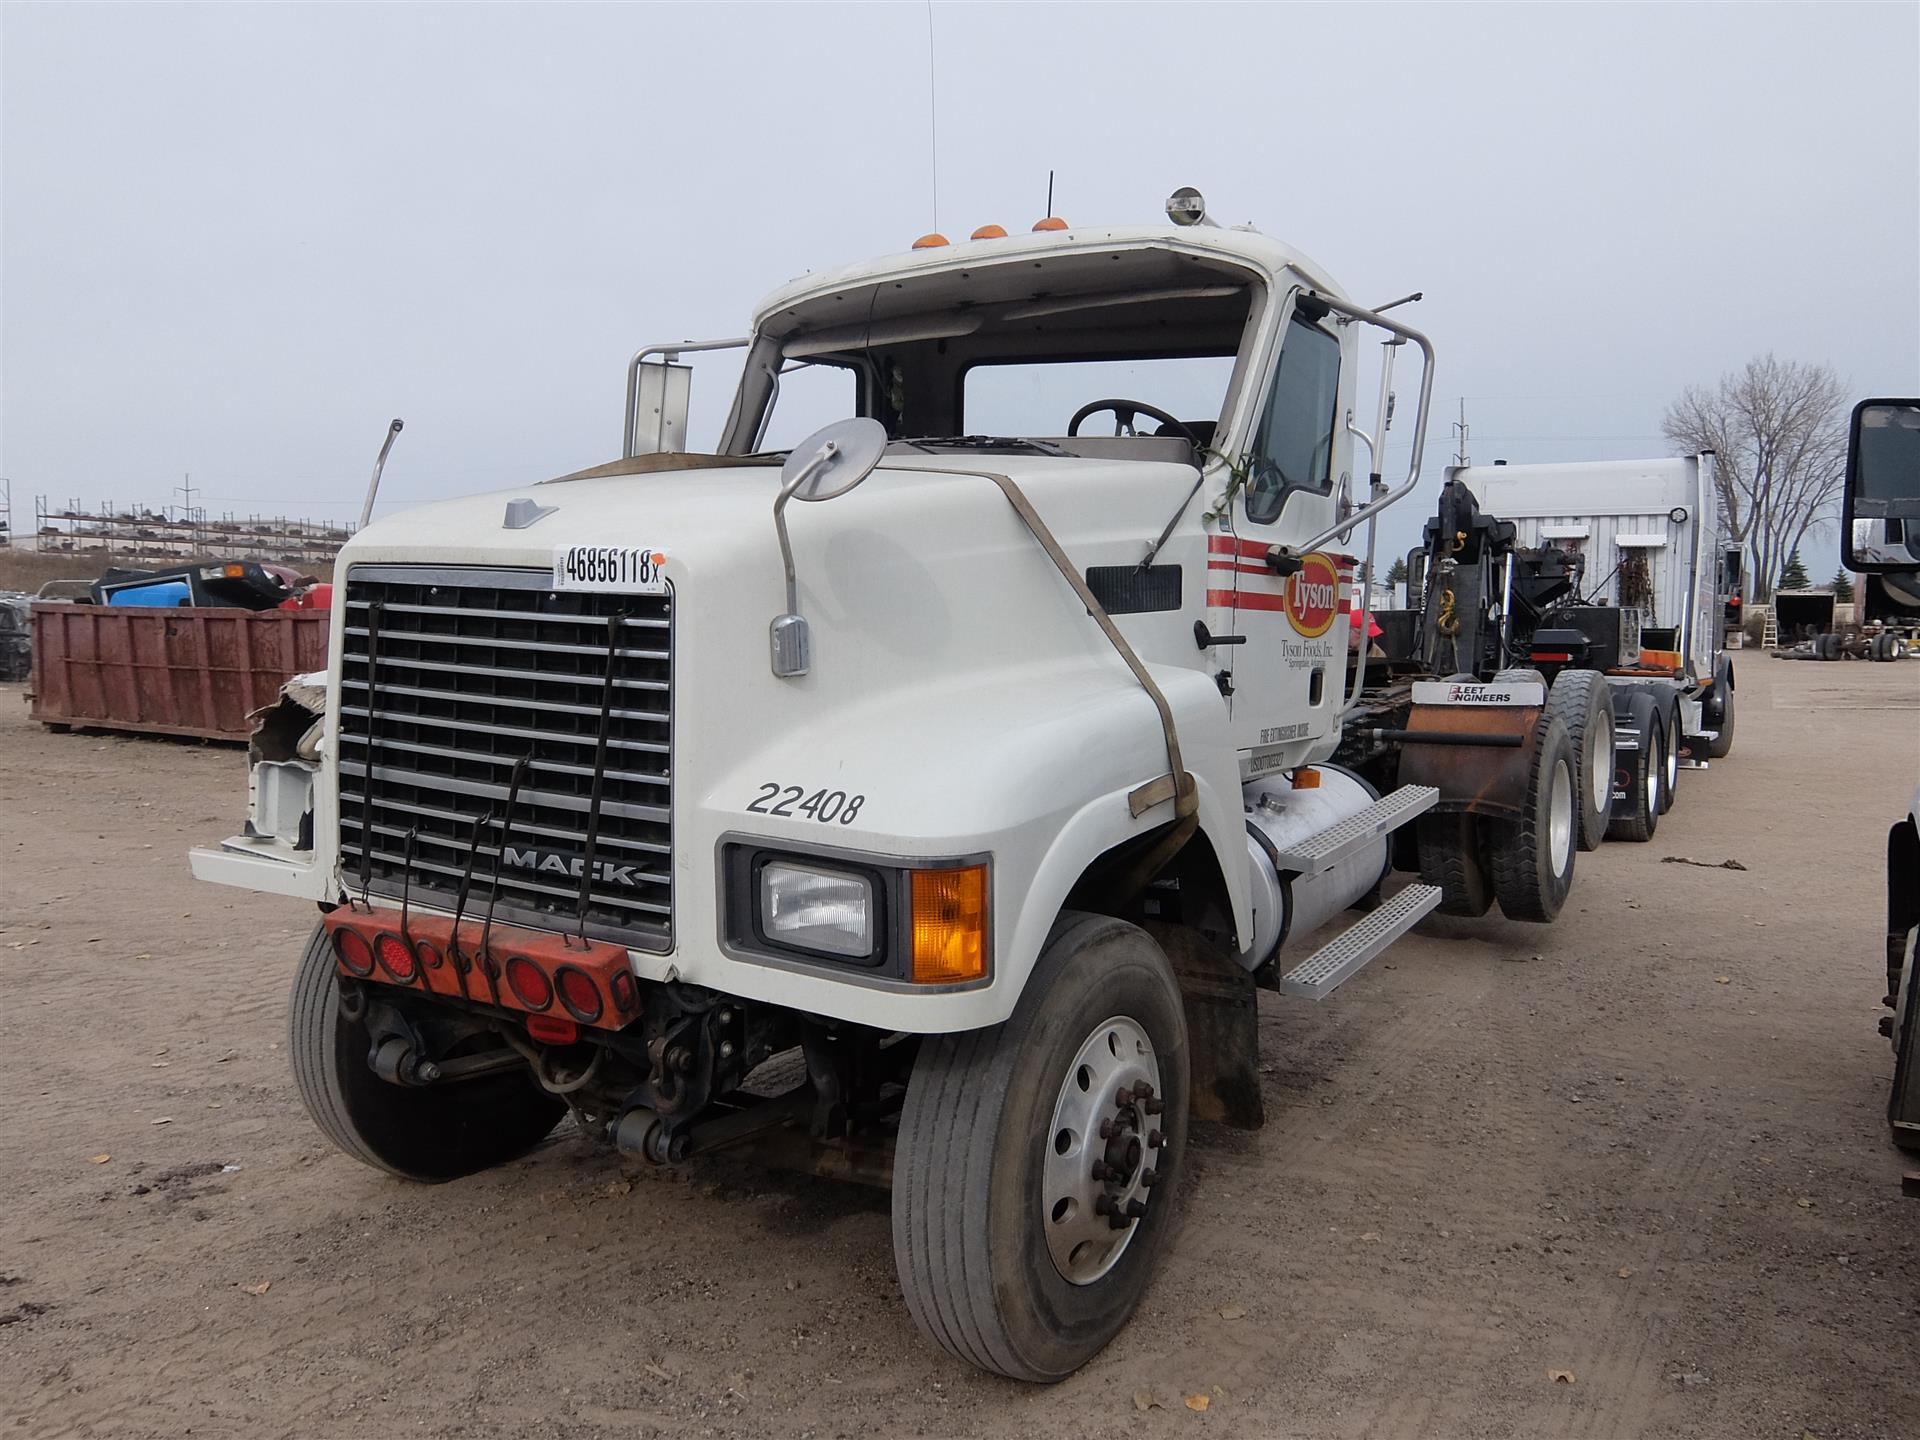 2007 Mack chn613 for sale-59085162